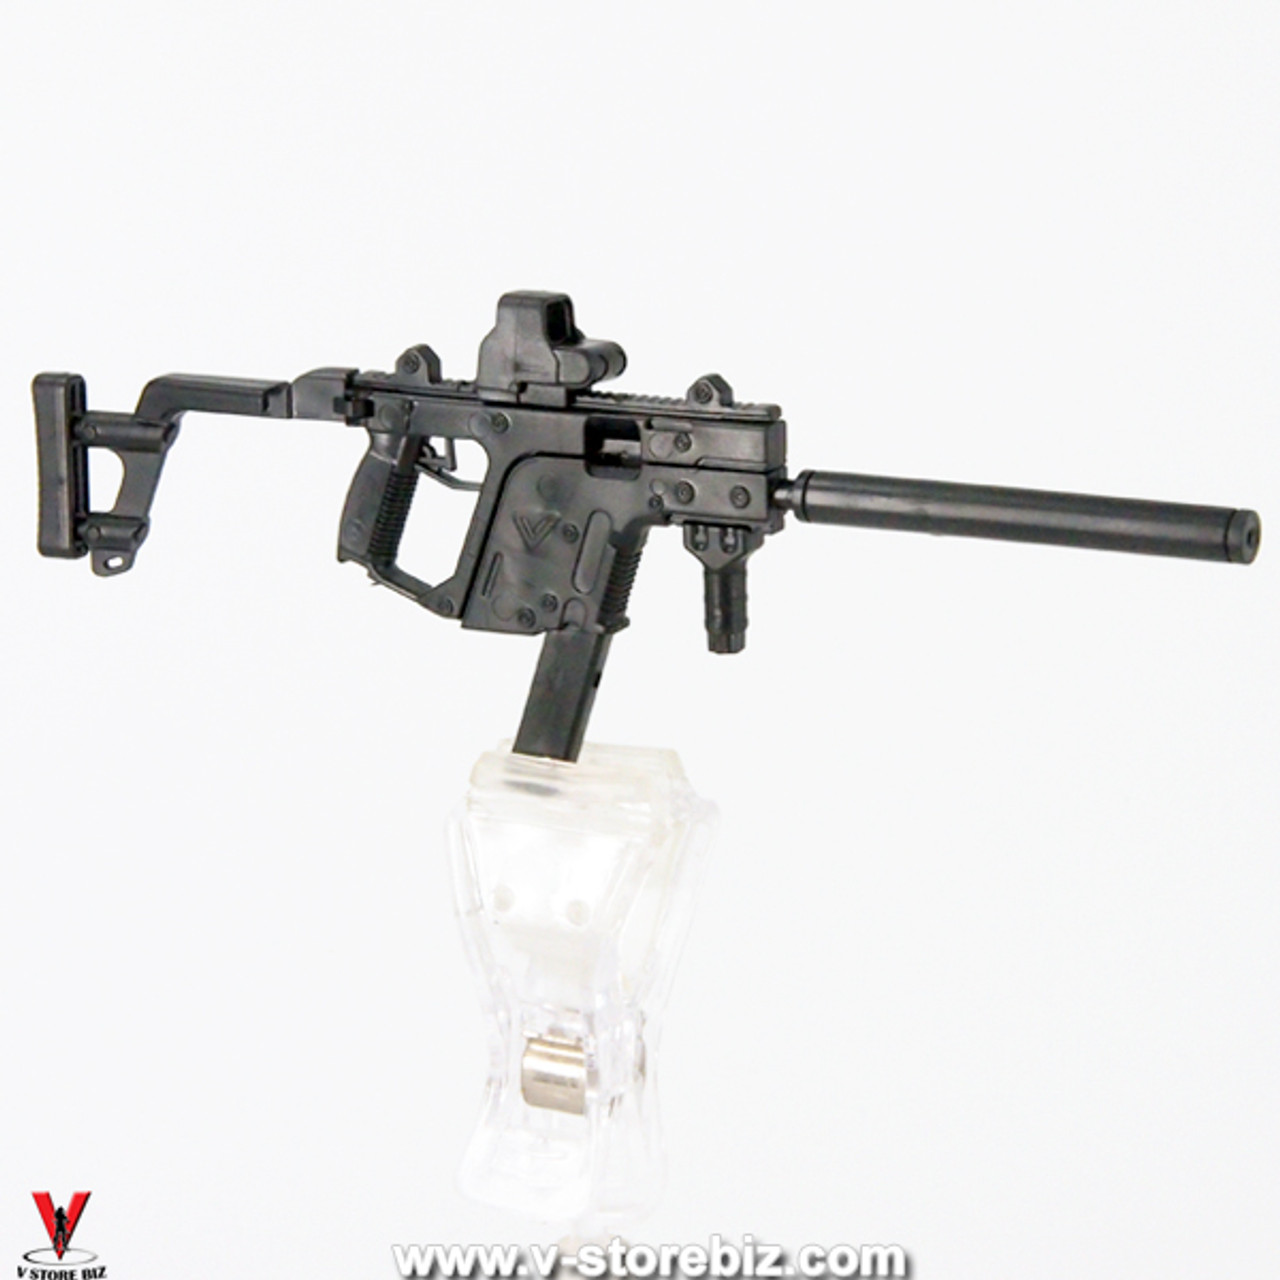 1//6 Scale Toy KRISS Vector SMG Black Suppressor